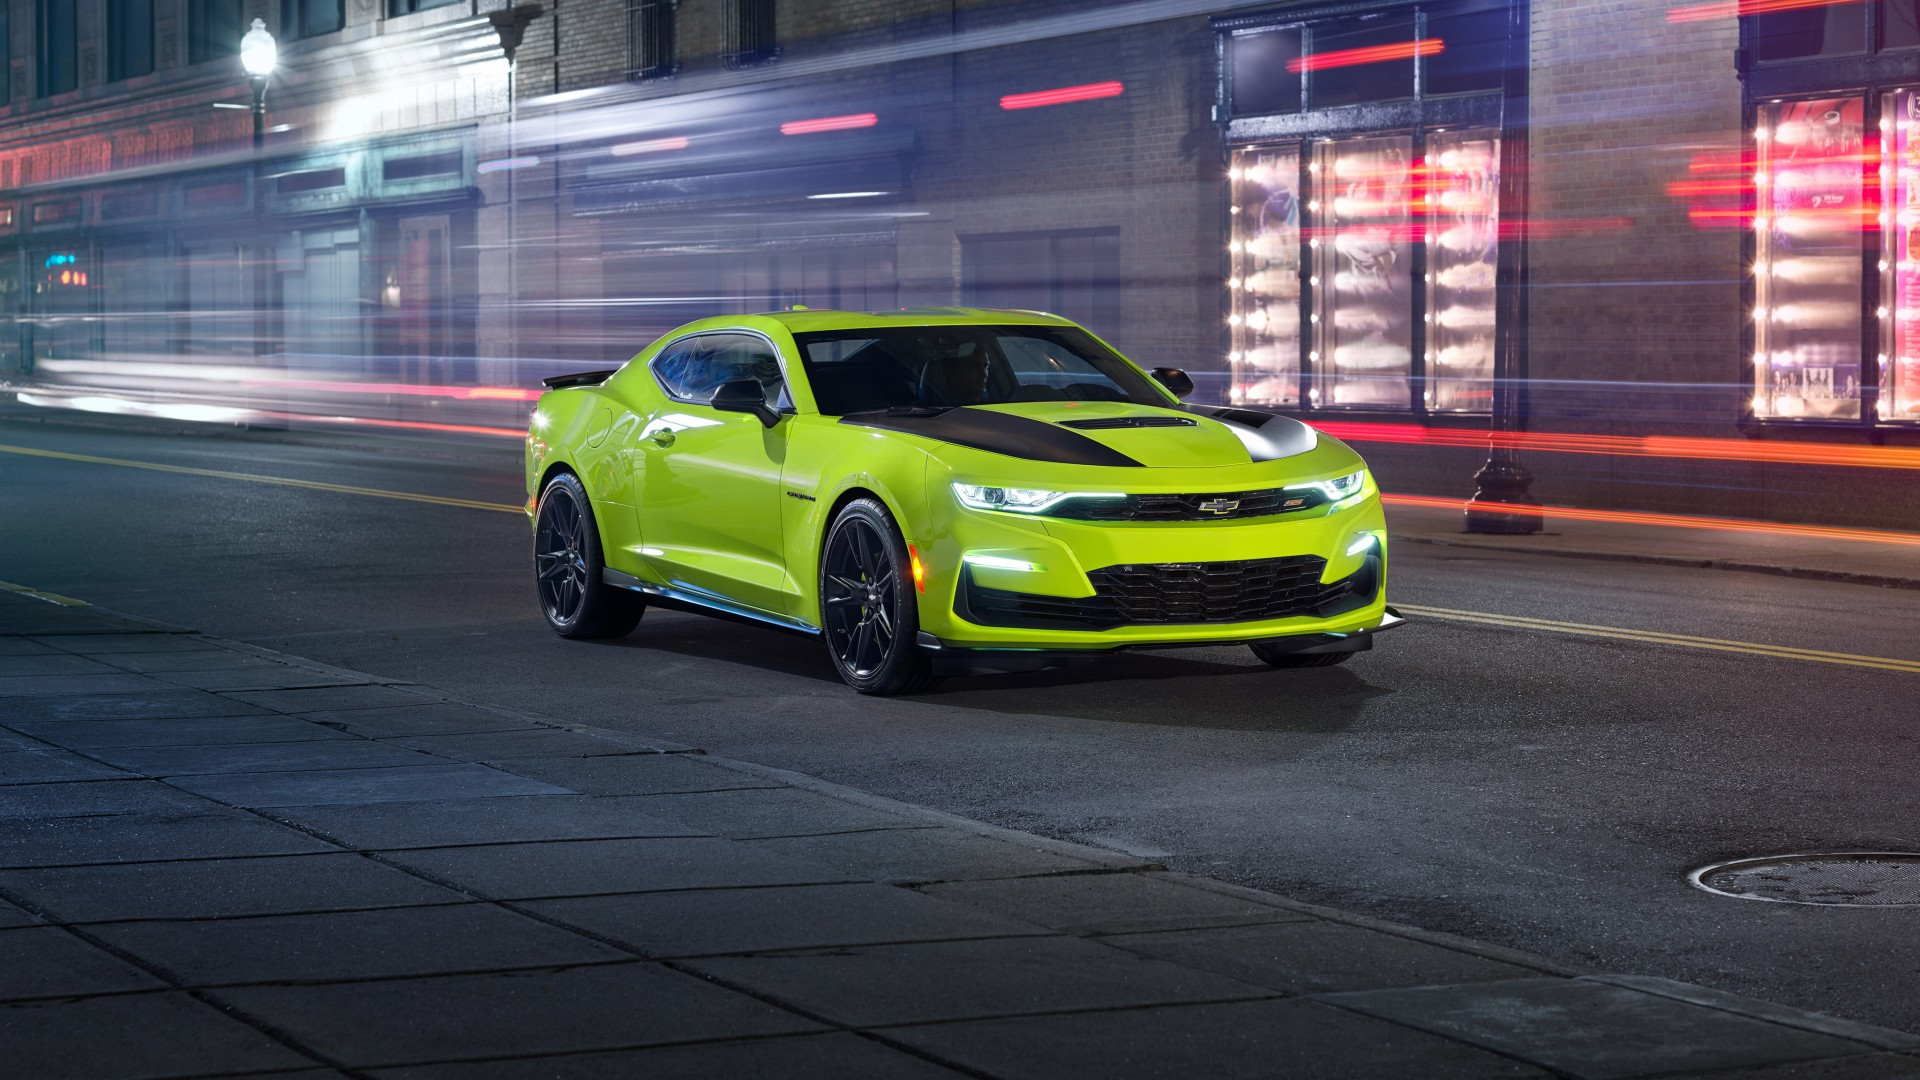 Chevrolet Camaro SS Shock Concept 4K 2018 Wallpaper | HD ...